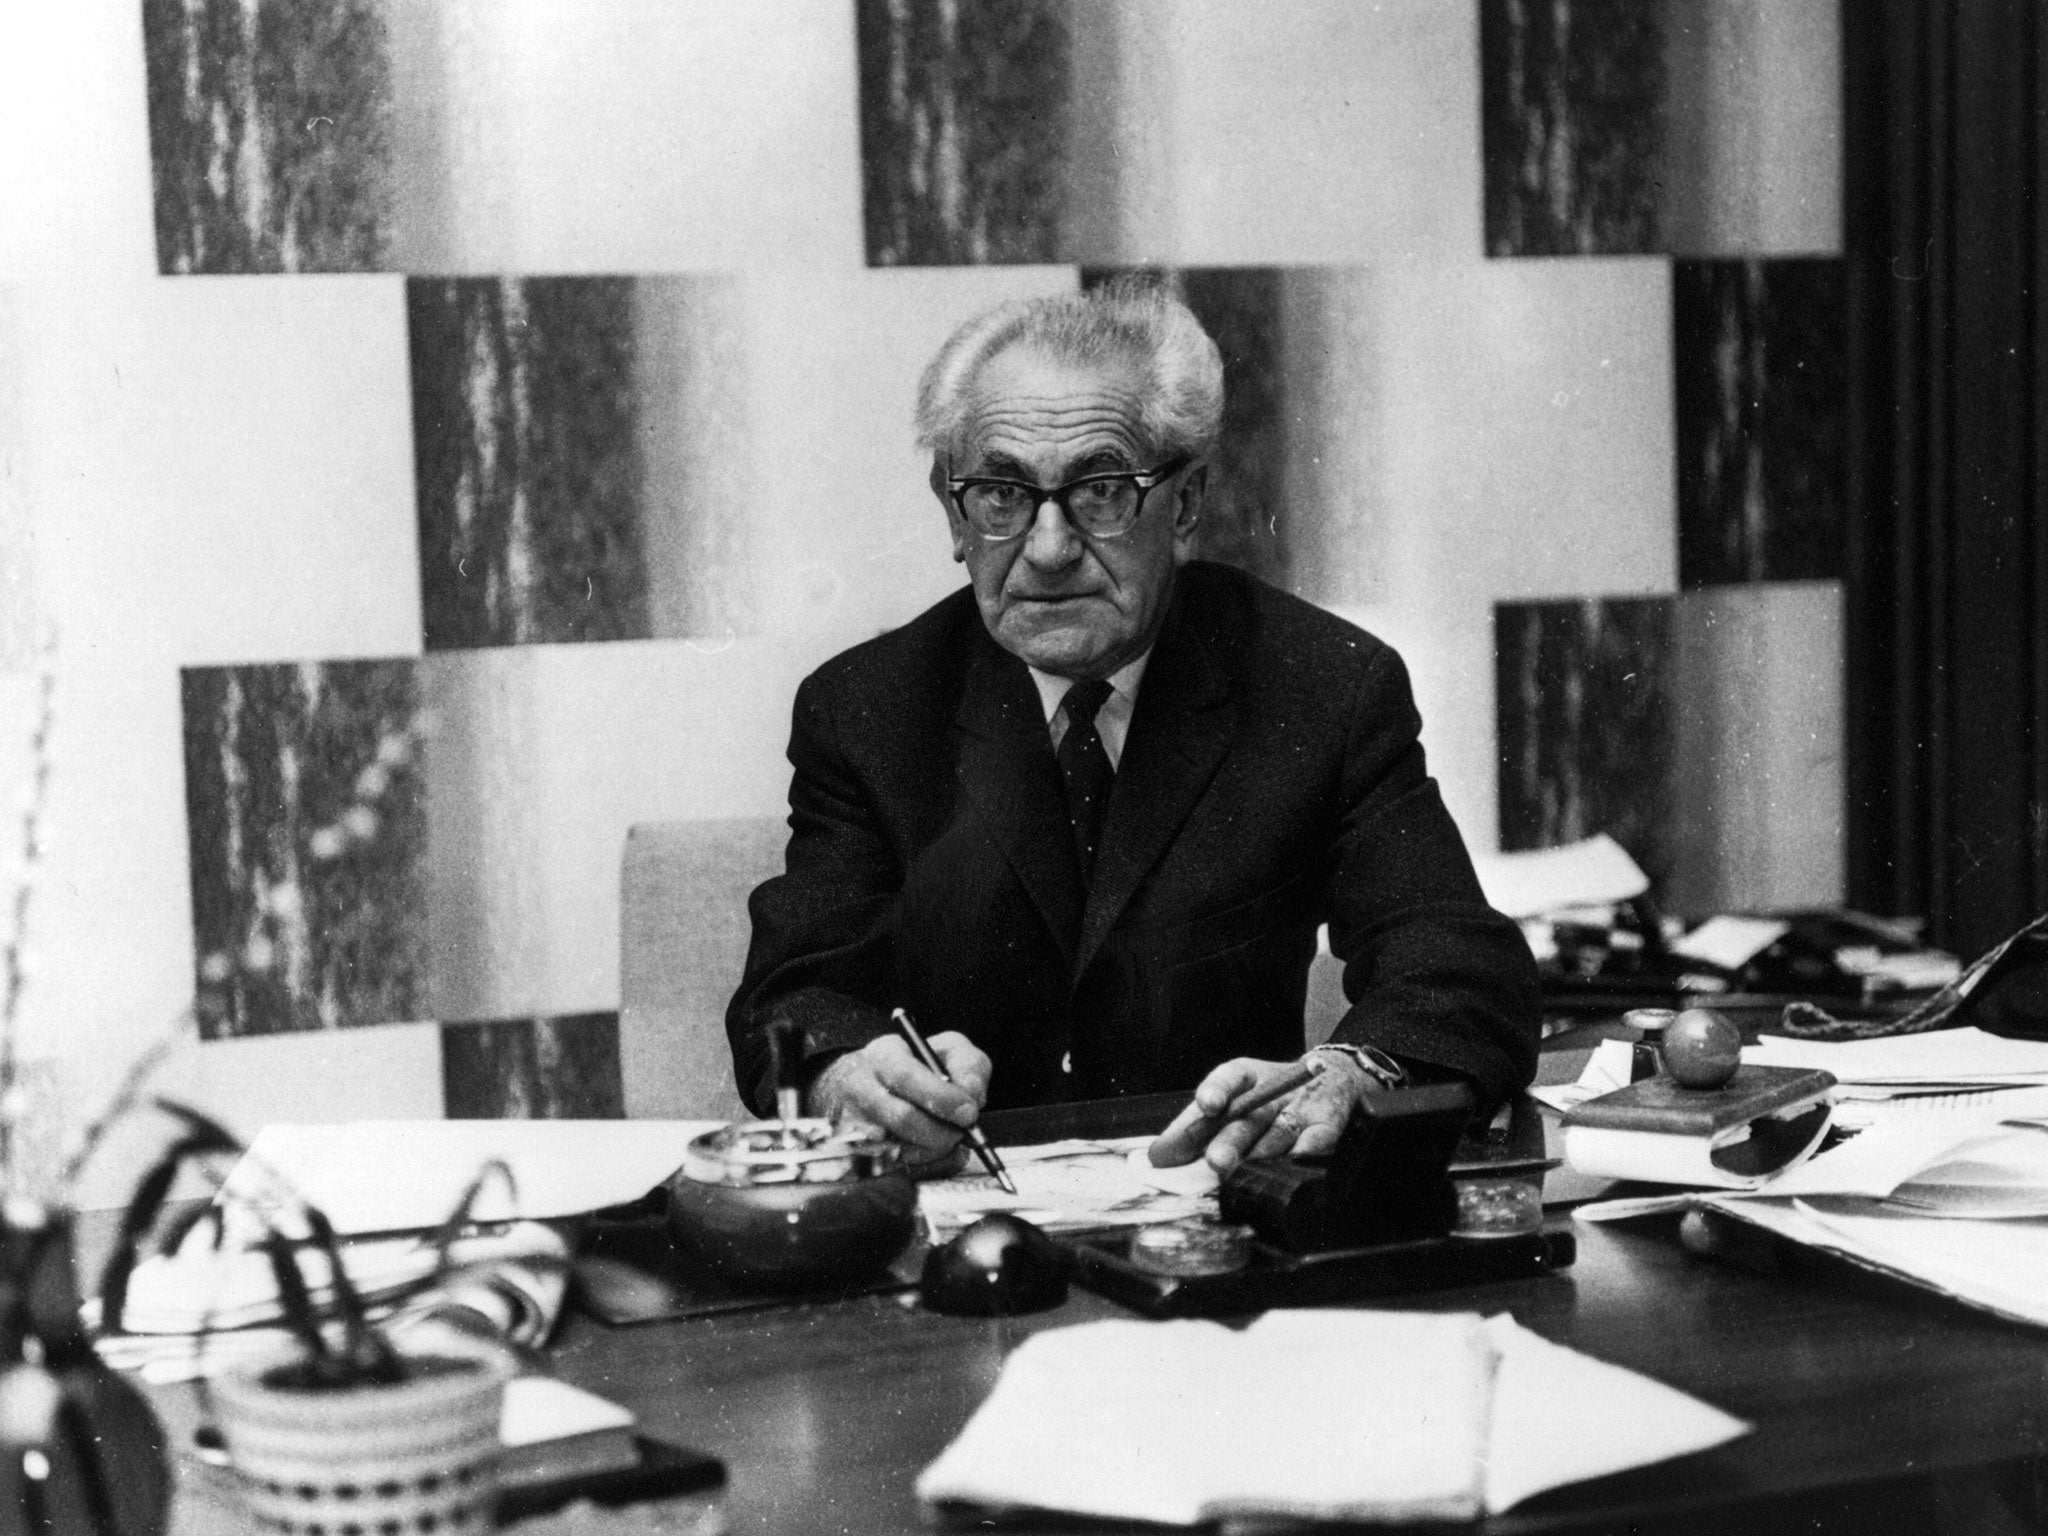 Germany finally pays tribute to first Nazi hunter Fritz Bauer | The Independent